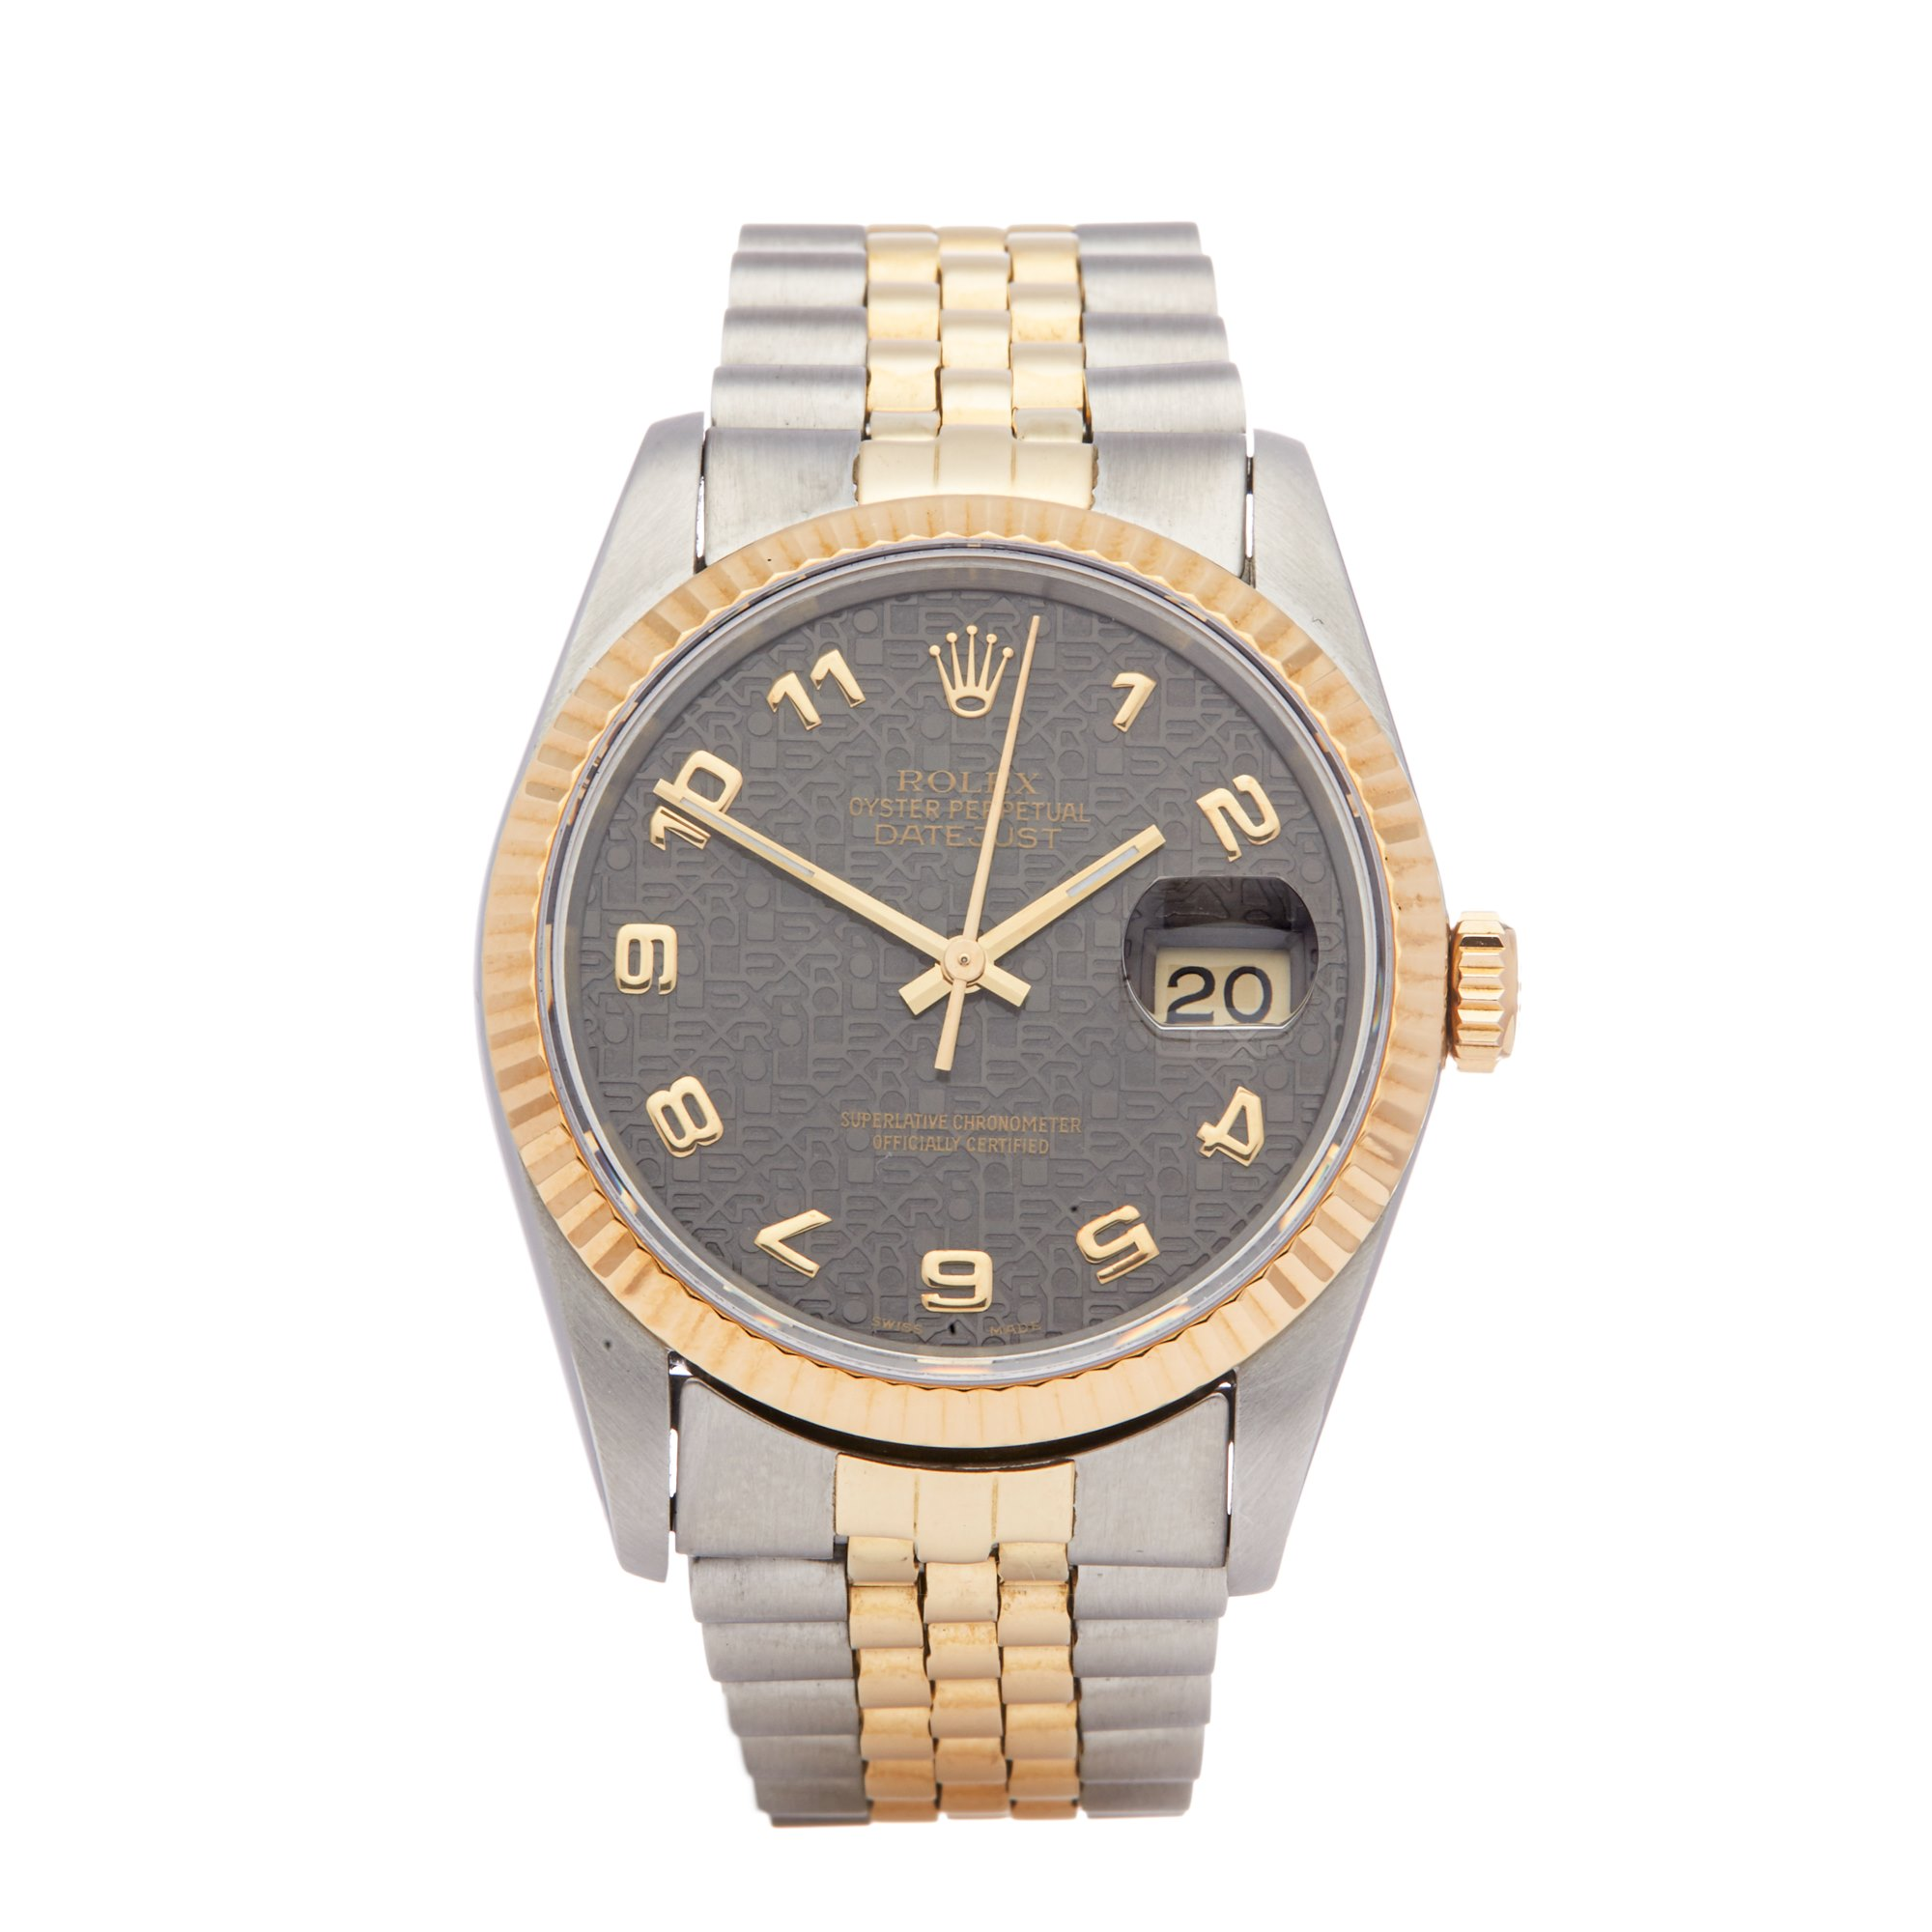 Rolex Datejust 36 Jubilee Dial Stainless Steel & Yellow Gold 16233